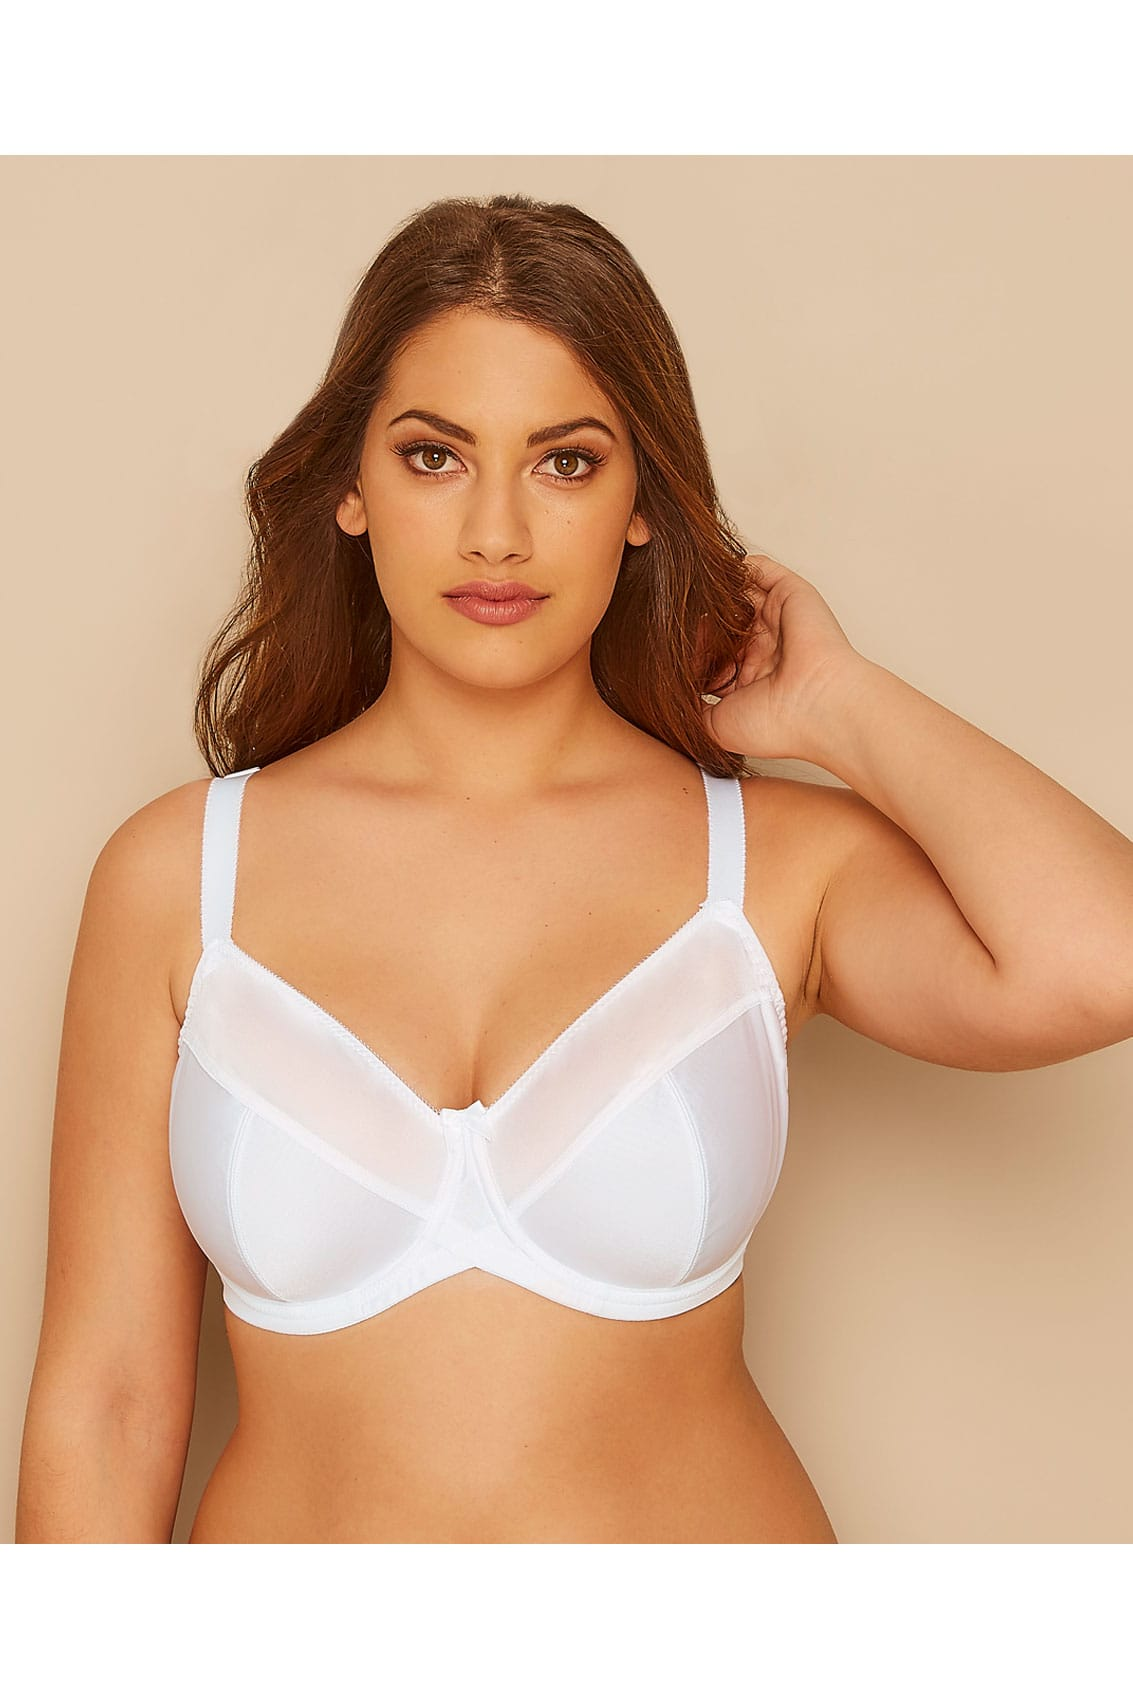 0743078b668b8 Plus Size Underwired Bras White Classic Smooth Non-Padded Underwired Bra